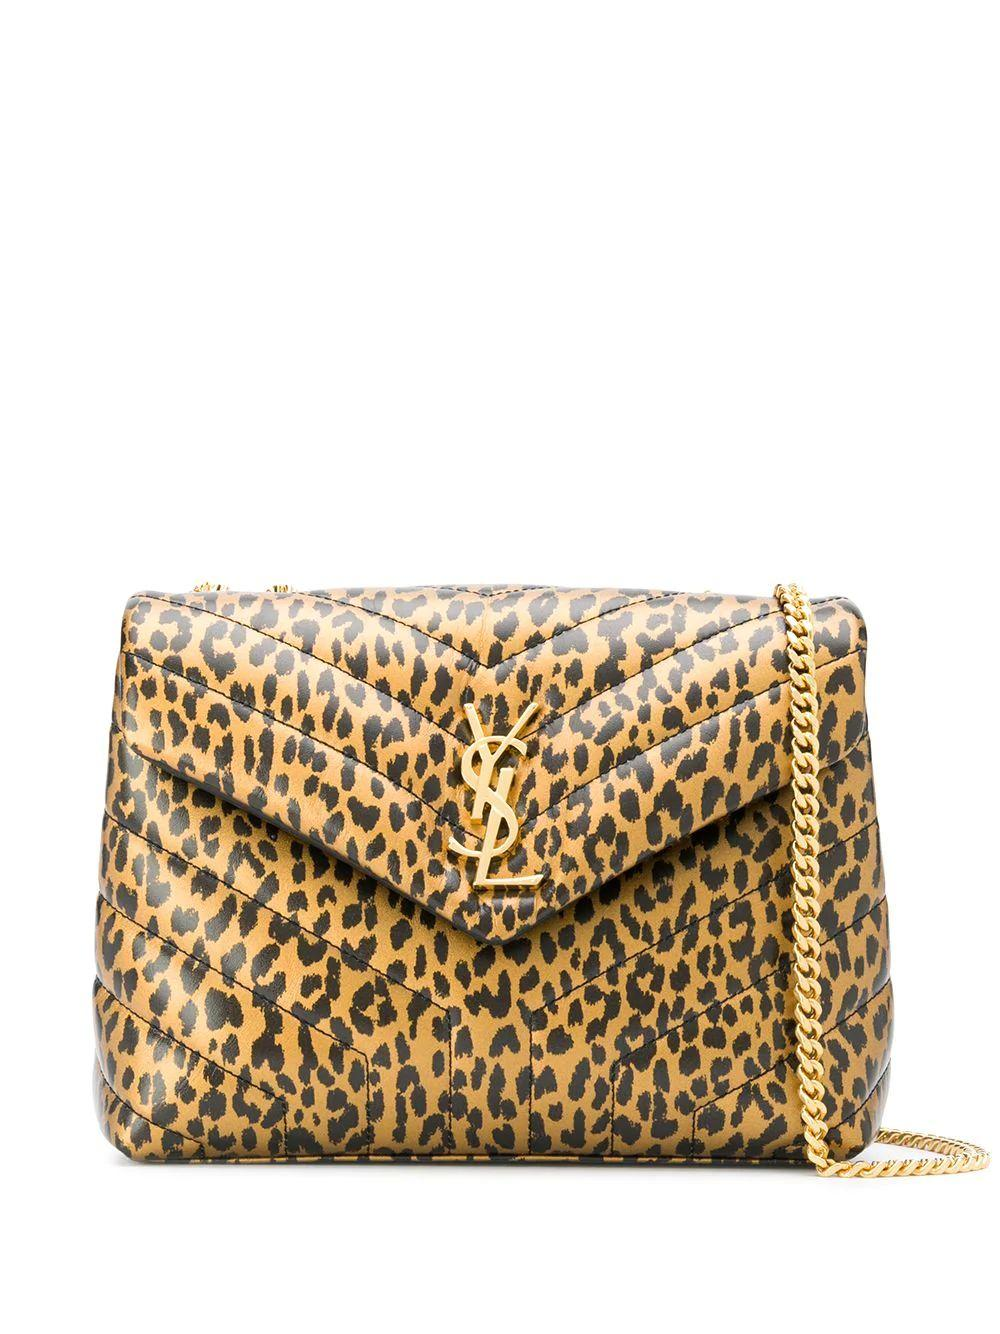 Lou Lou Leopard Bag Item # 49469913N11